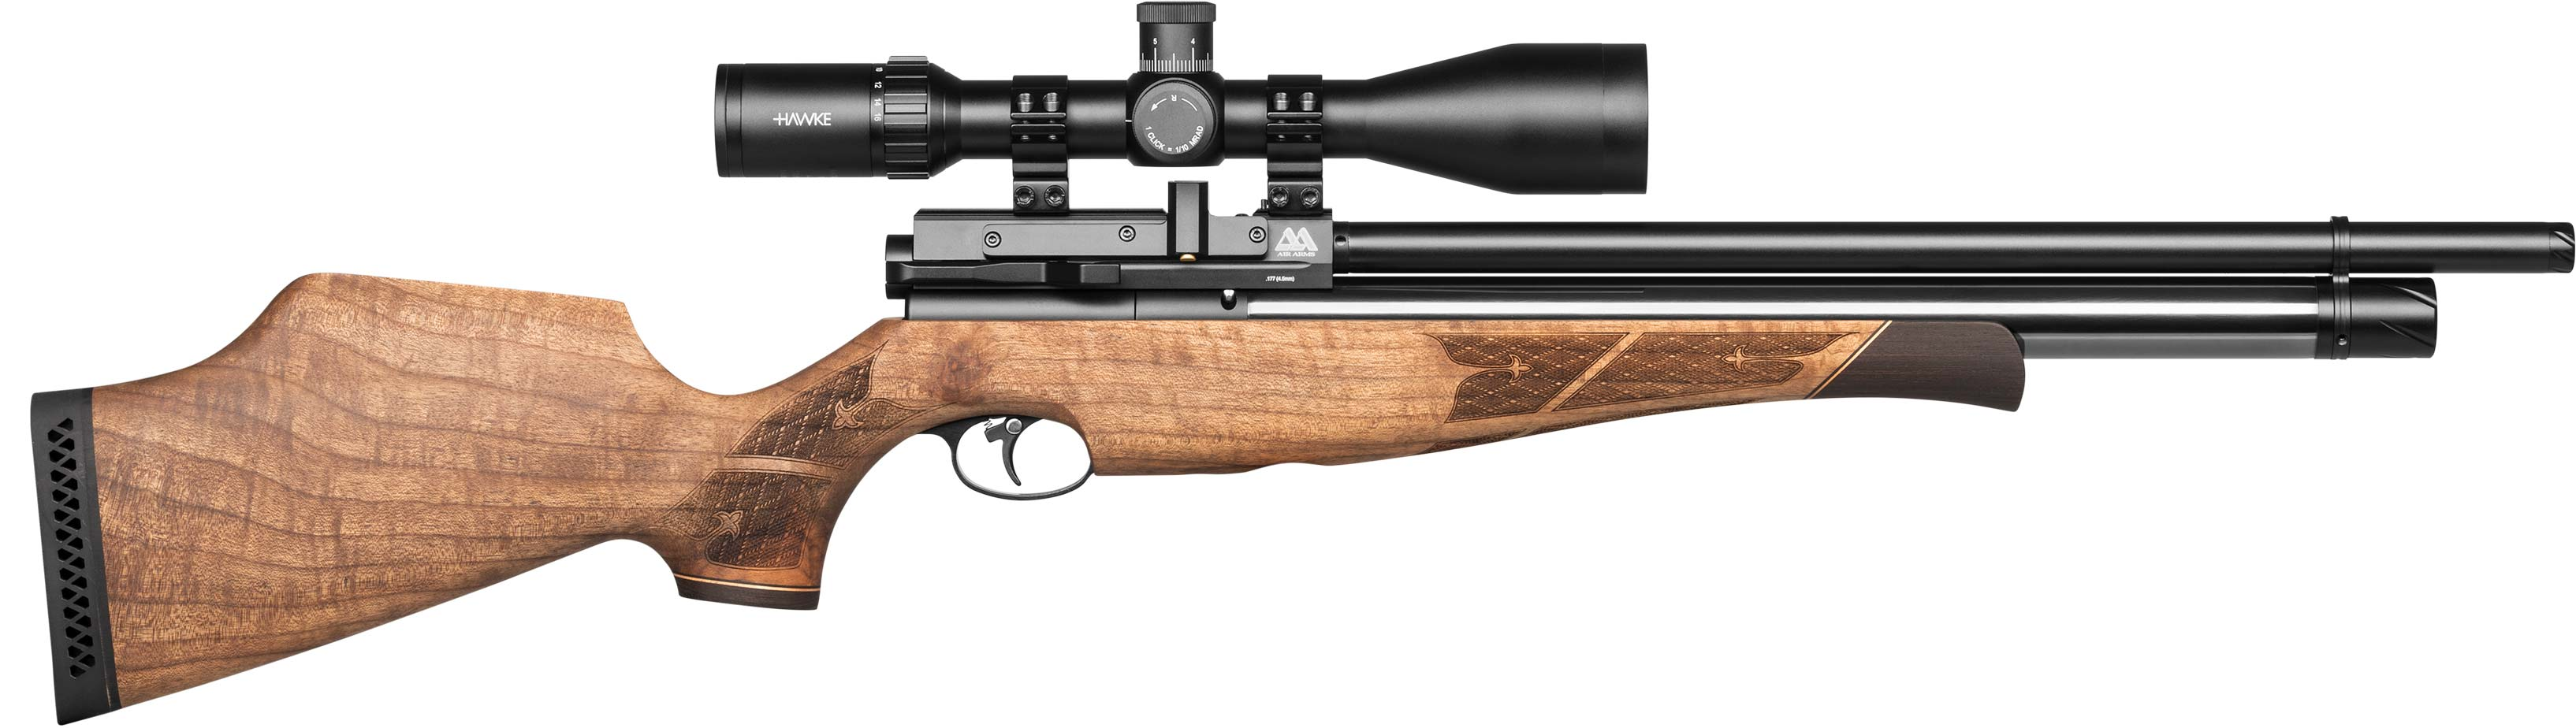 S510 Carbine Walnut